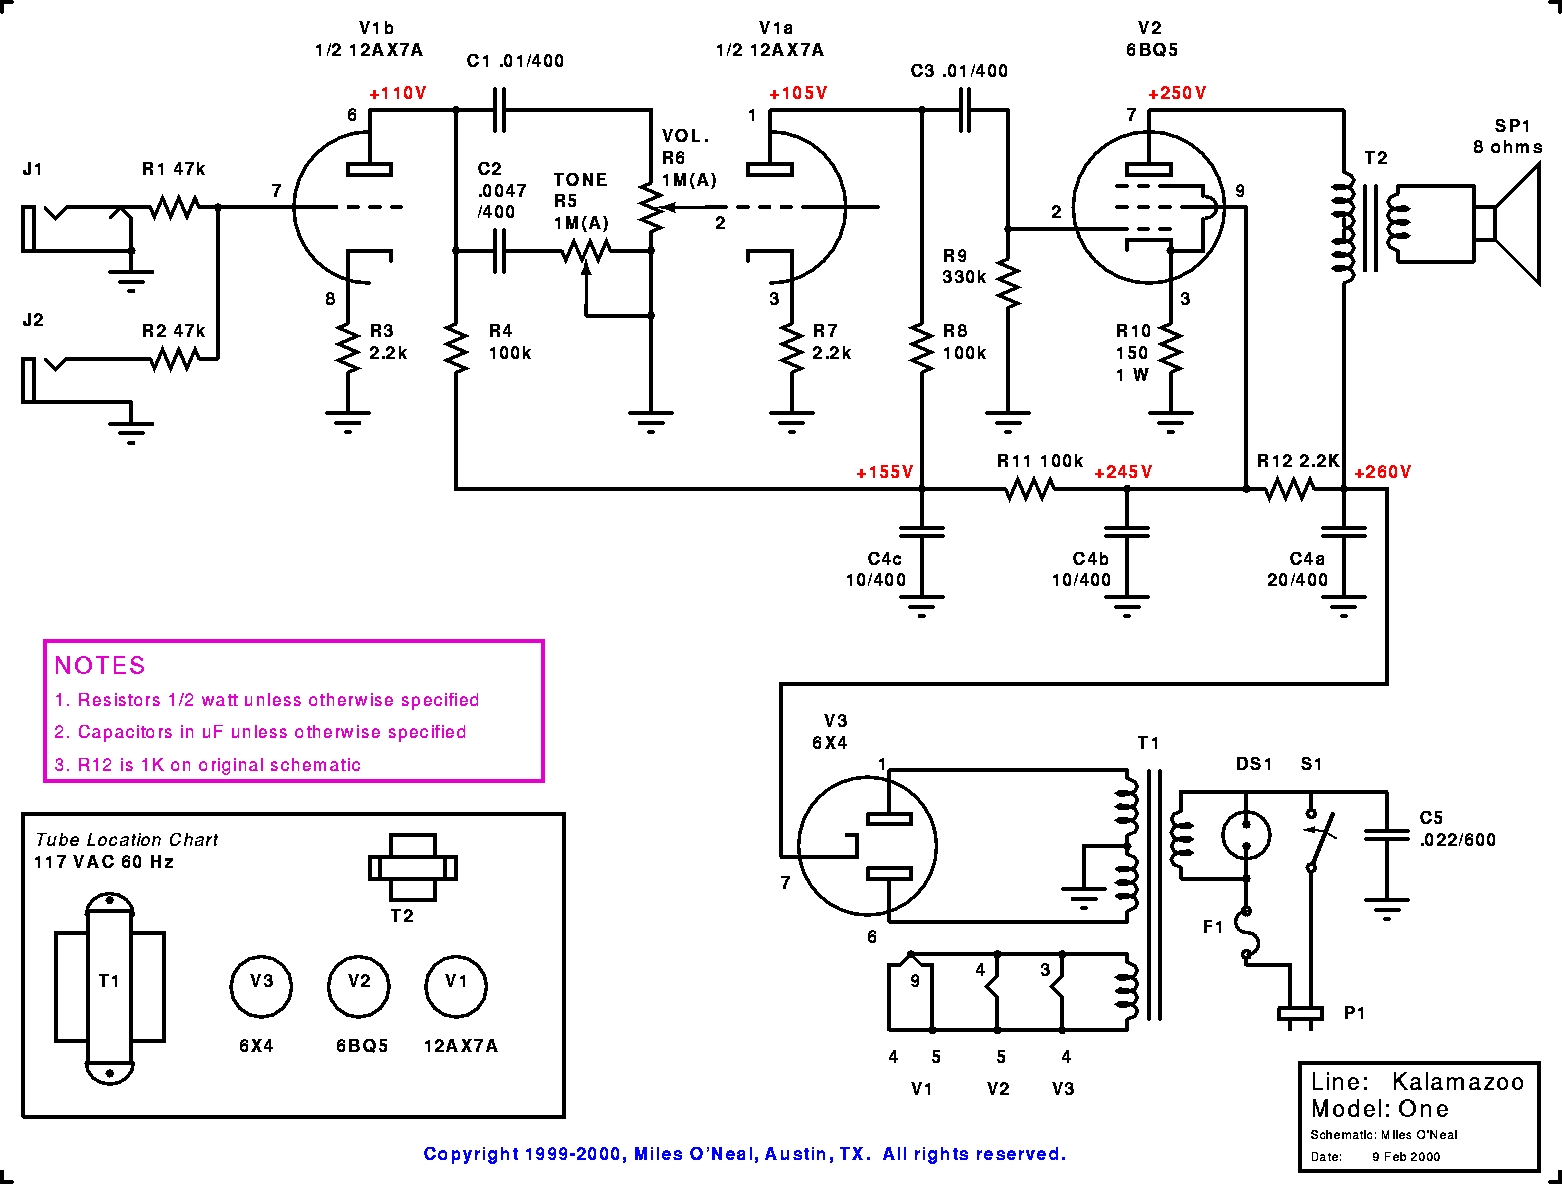 Wiring Diagram Guitar And Amplifier 35 Images Pignose Strat Schem New Kalamazoo Amp Field Guide Model 1 Schematic Footswitch At Cita